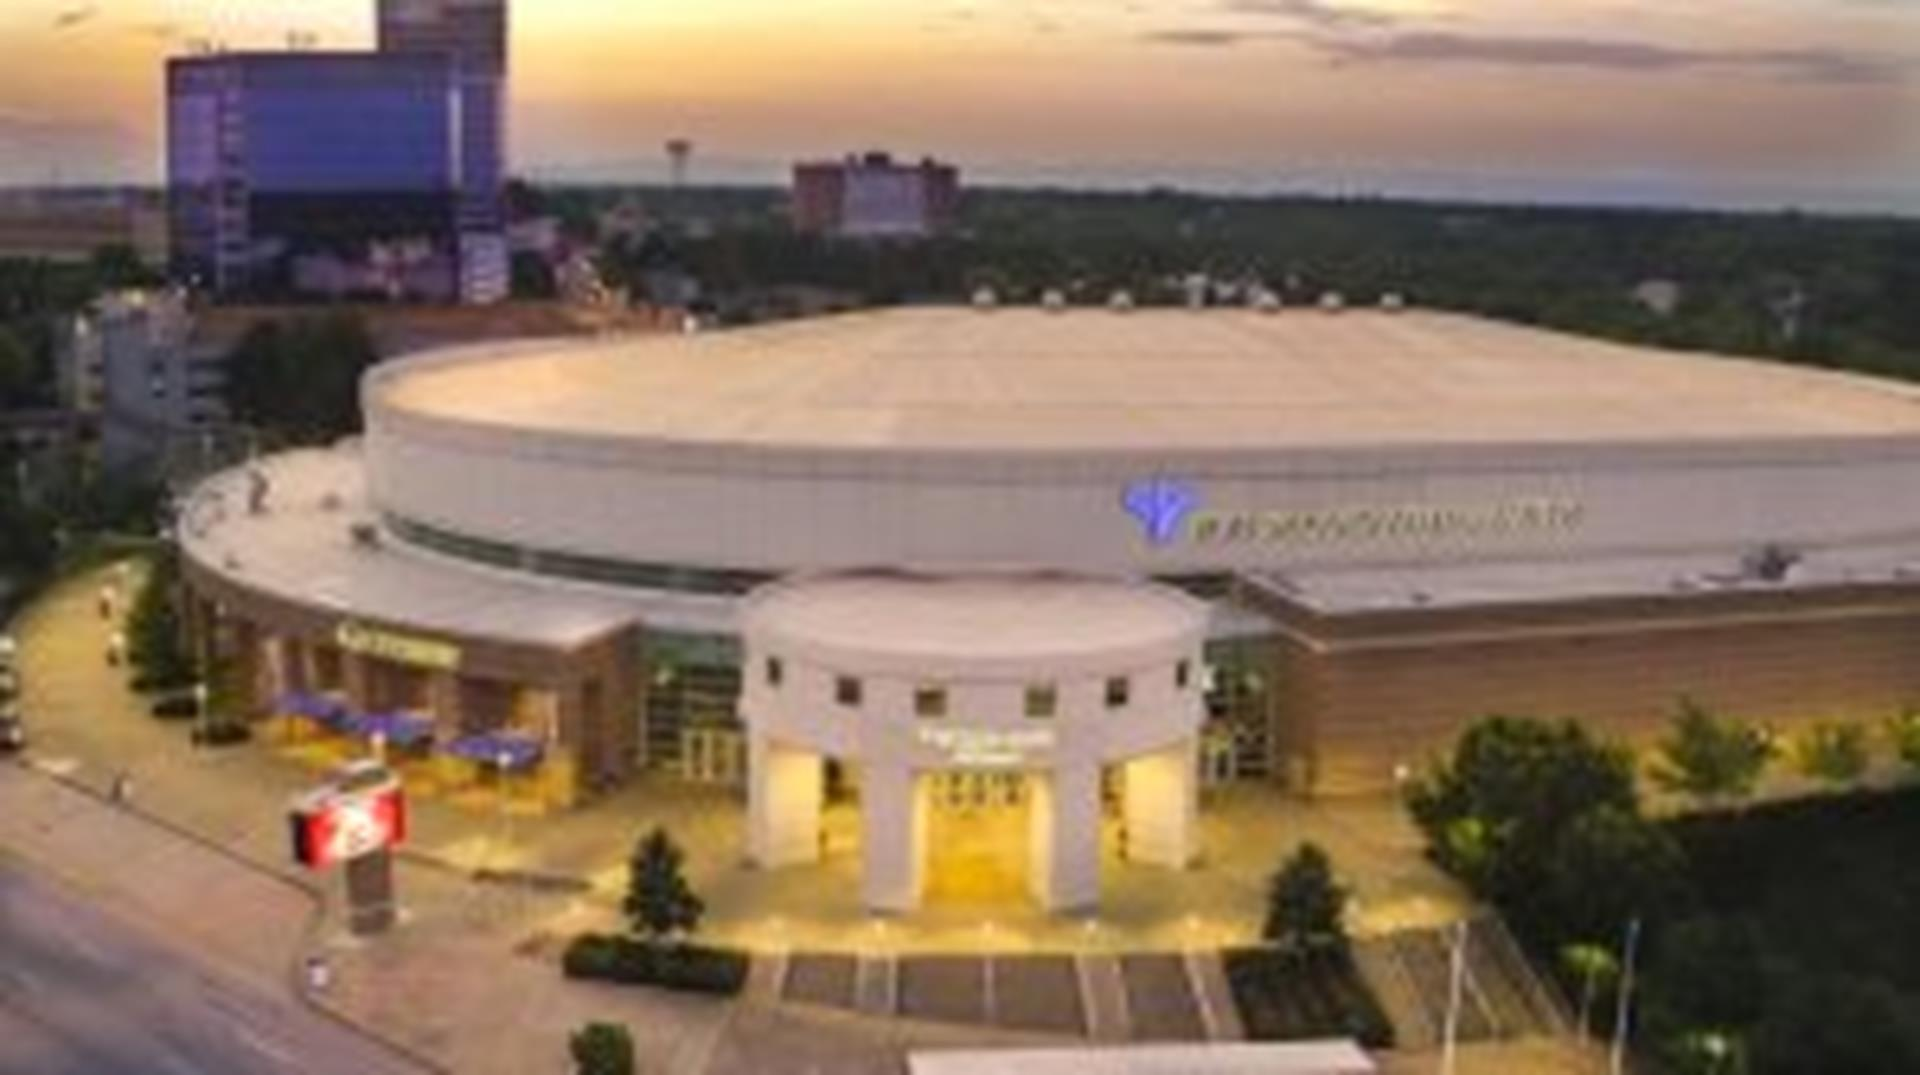 Bon Secours Wellness Arena Exterior